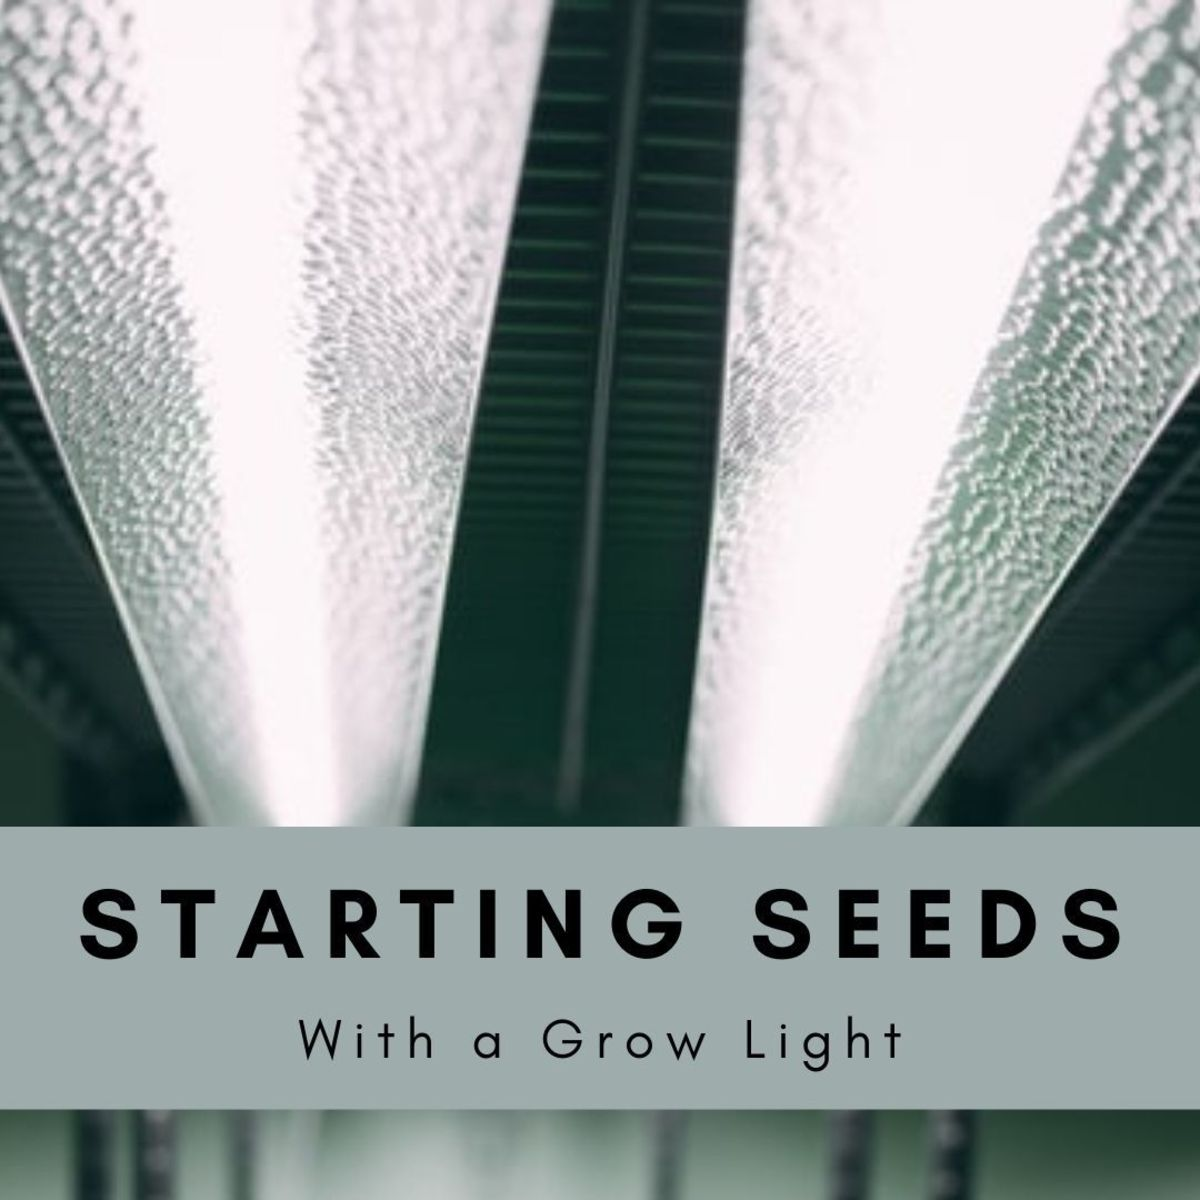 Starting them from seed is a great choice, but it's super hard without an LED or at least some form grow light.